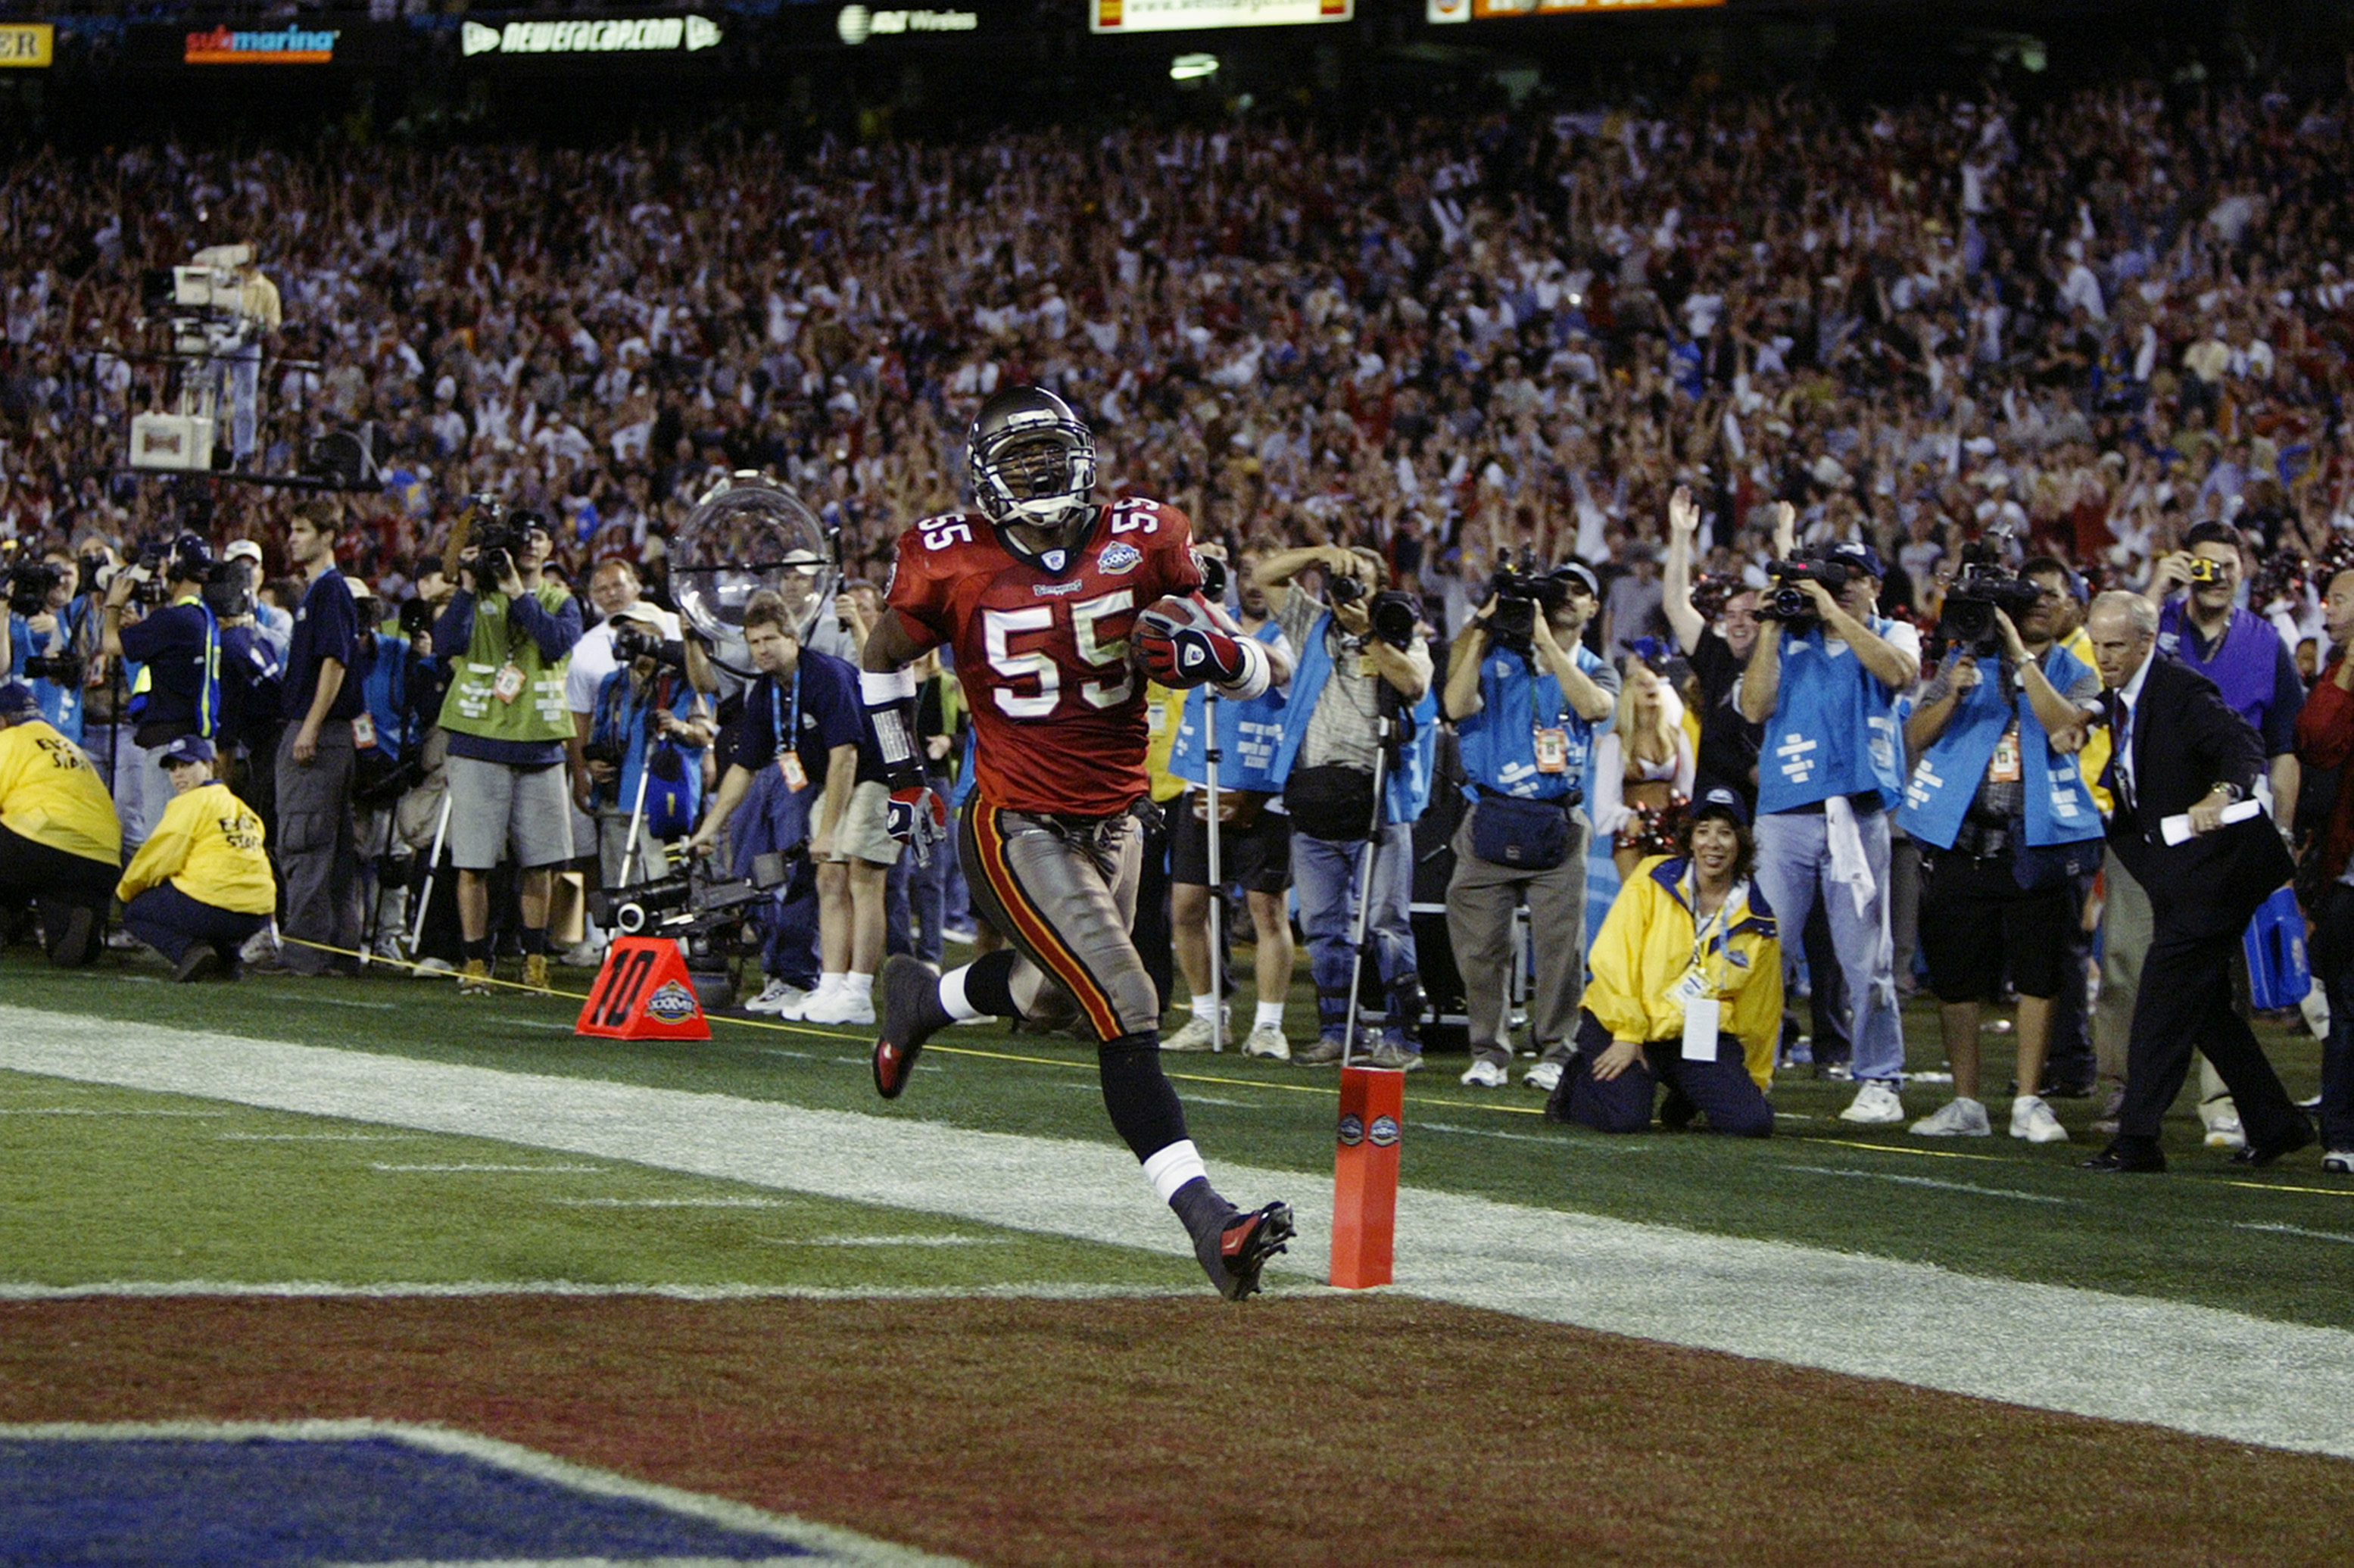 Derrick Brooks fourth quarter touchdown off a fumble during the Buccaneers Super Bowl win.